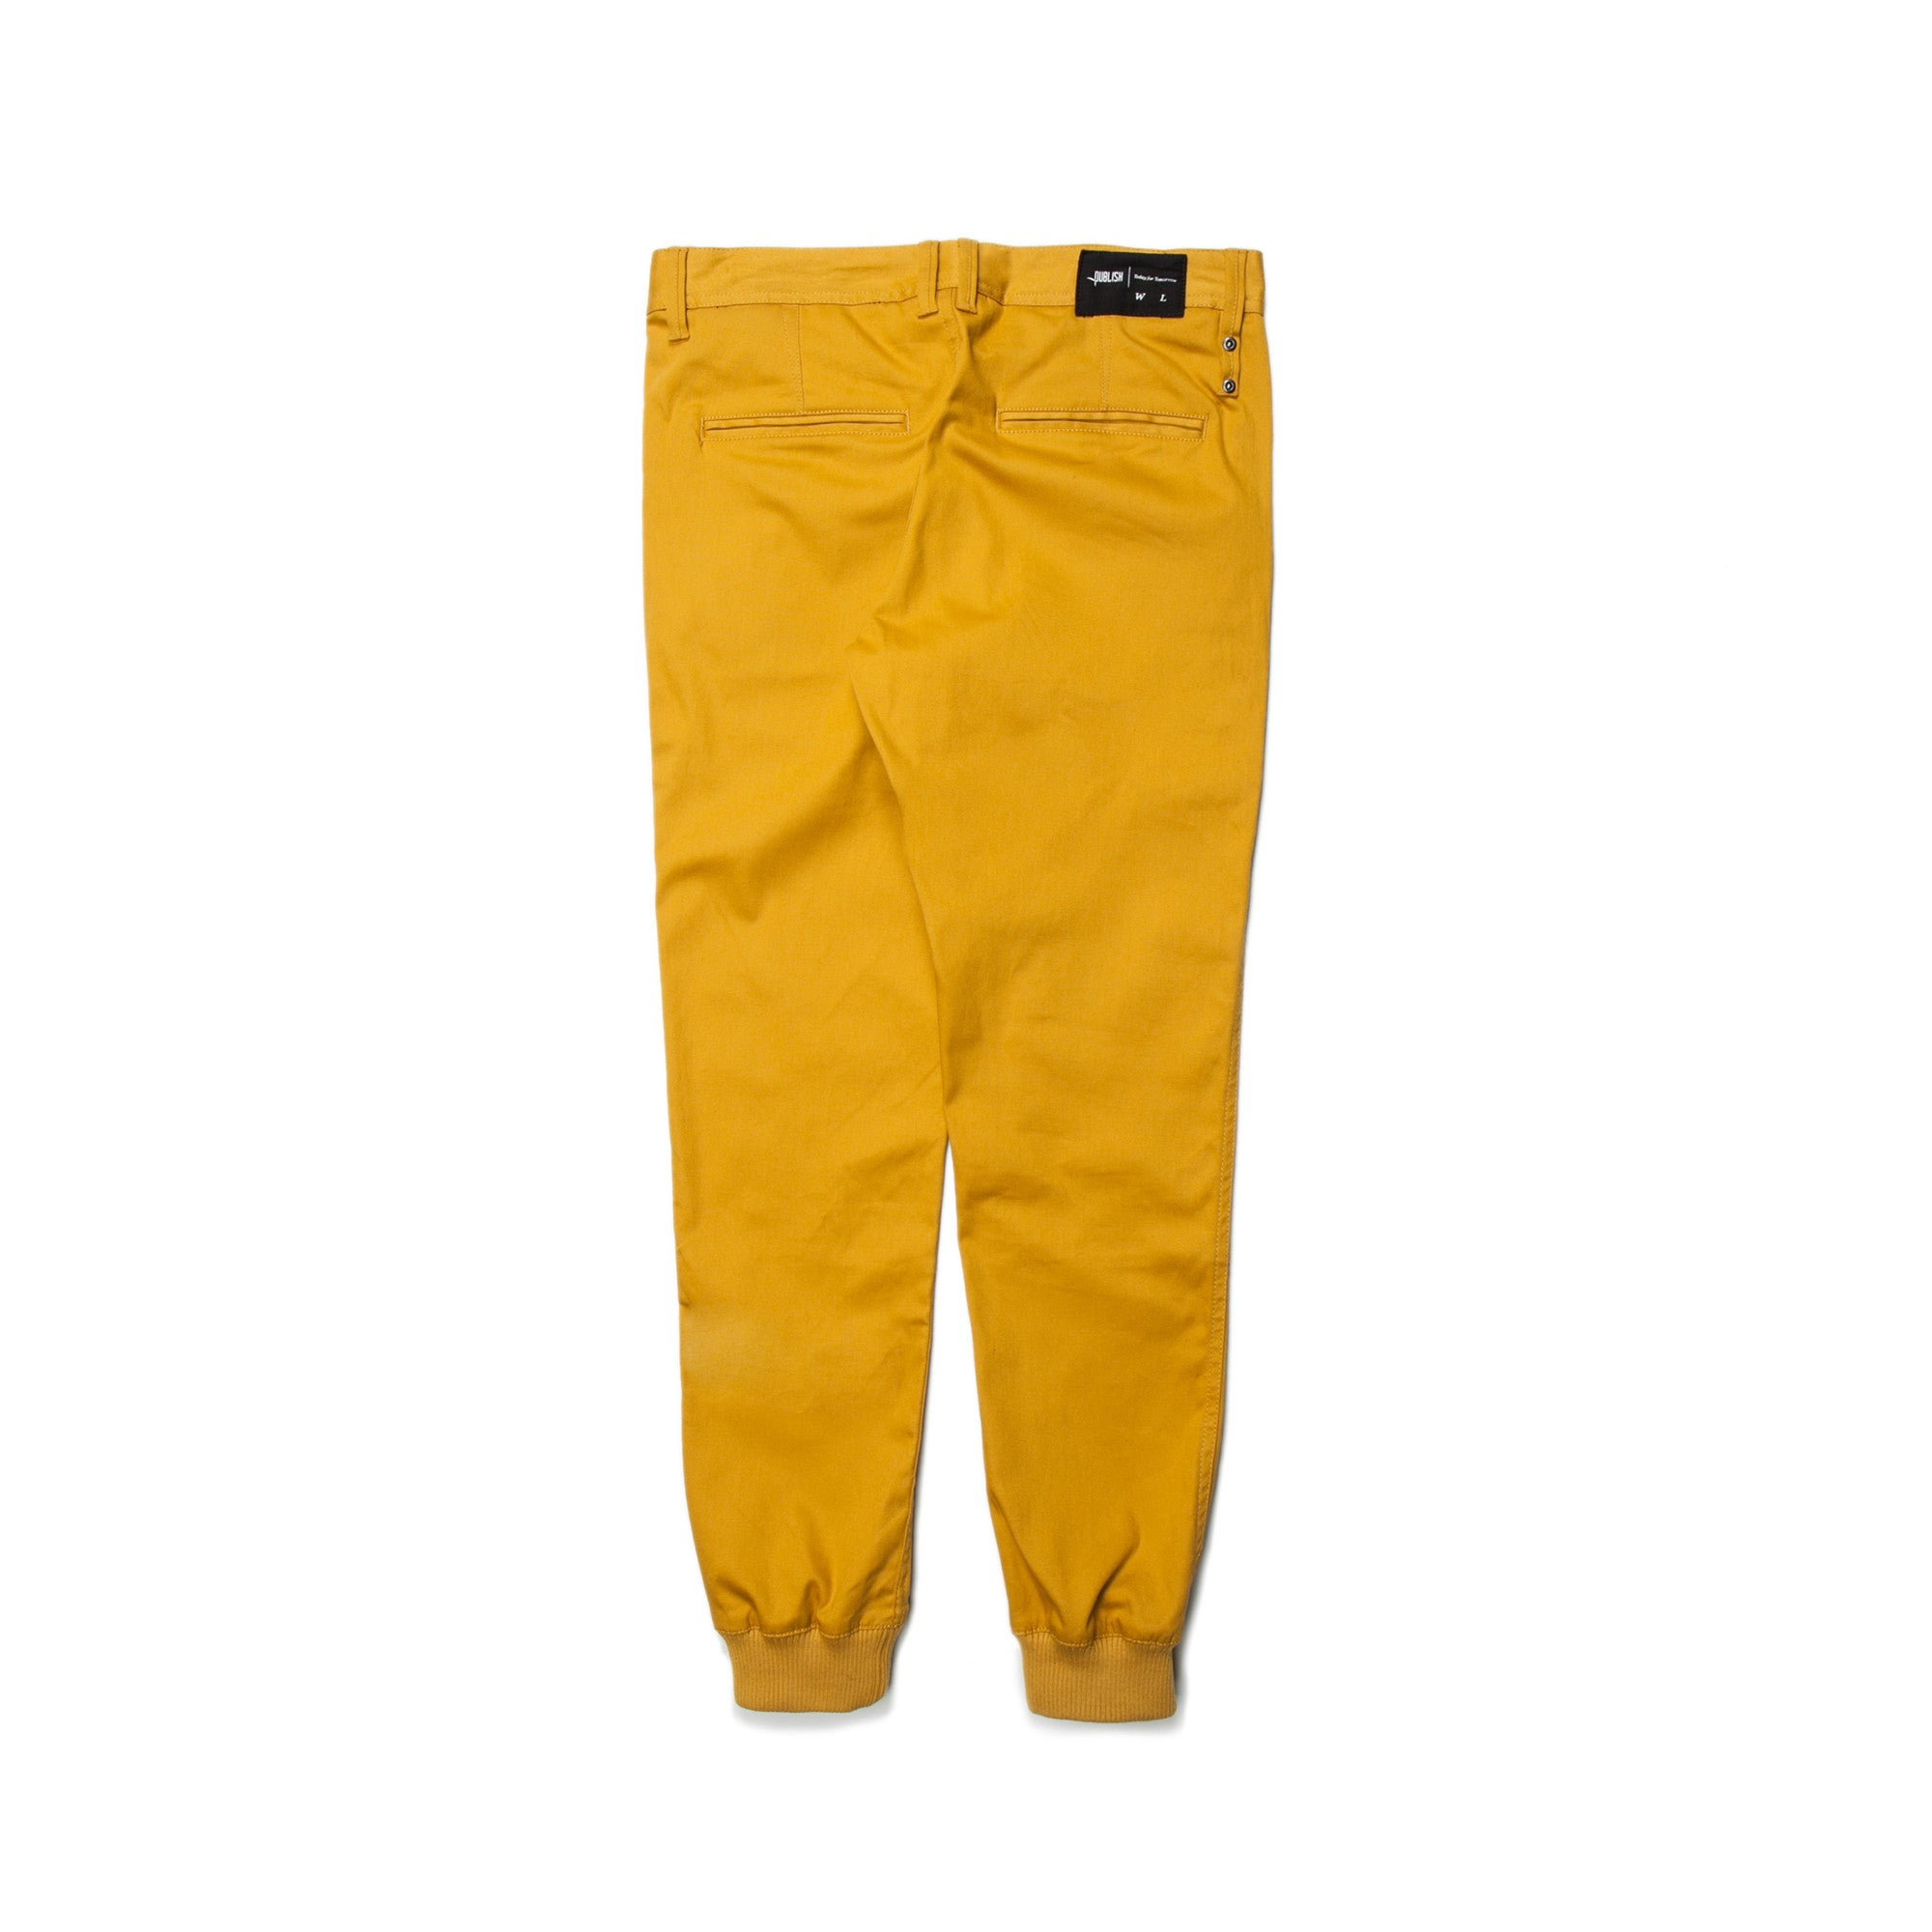 Publish Legacy Jogger Pants - Mustard-Apparels-Navy Selected Shop